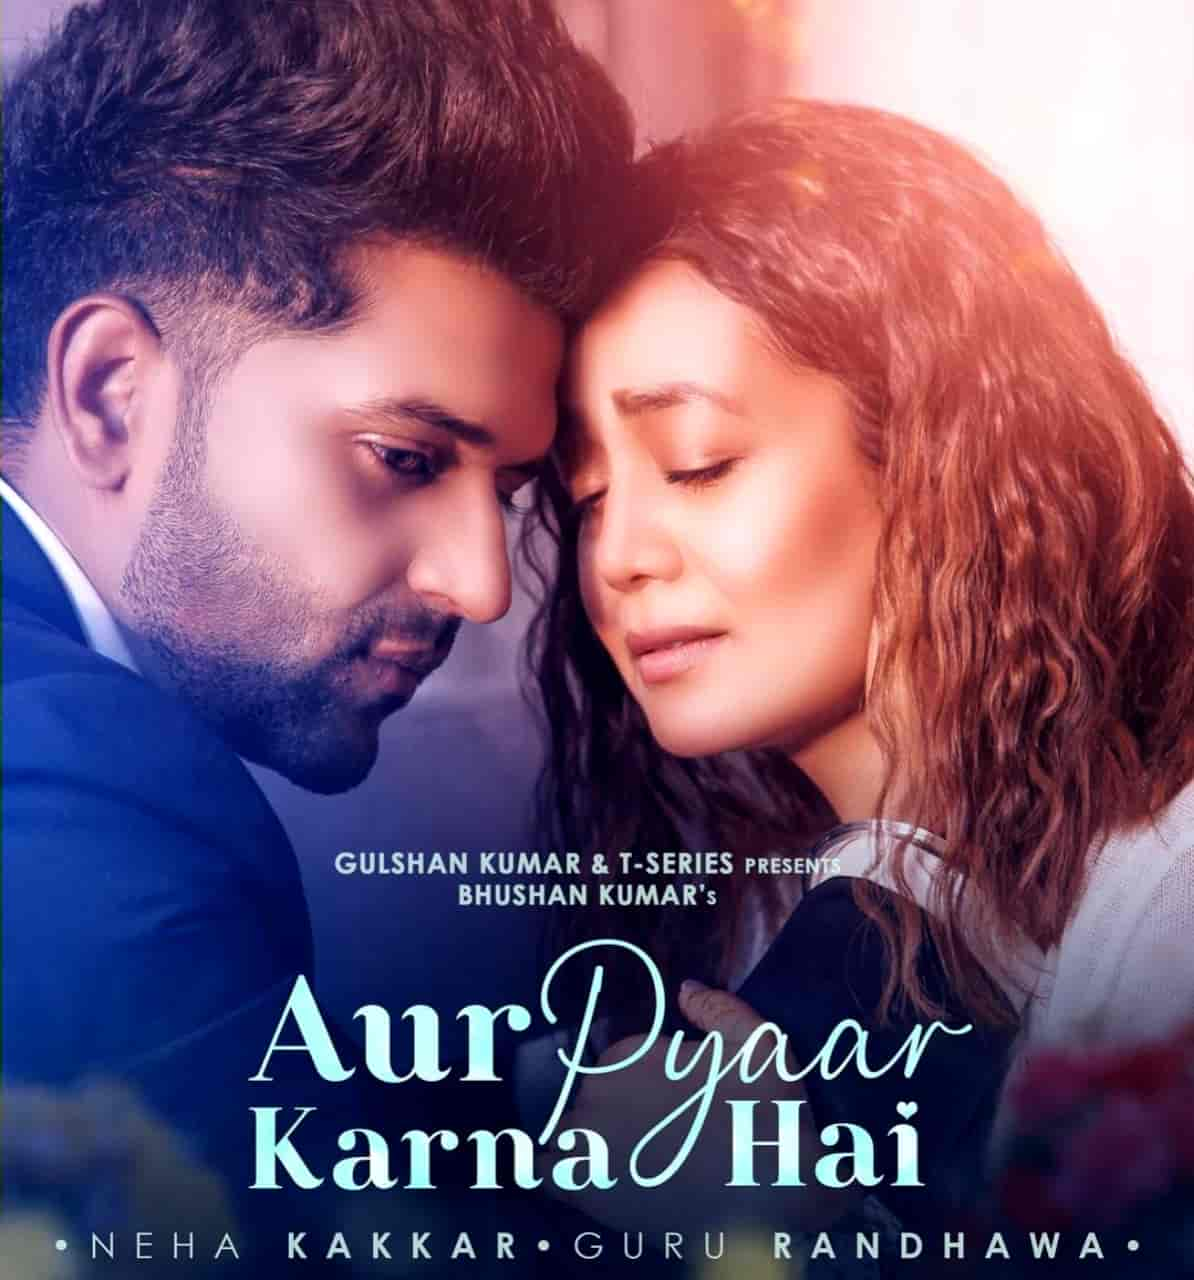 Aur Pyaar Karna Hai By Neha Kakkar & Guru Randhawa Official Music Video (2021) HD